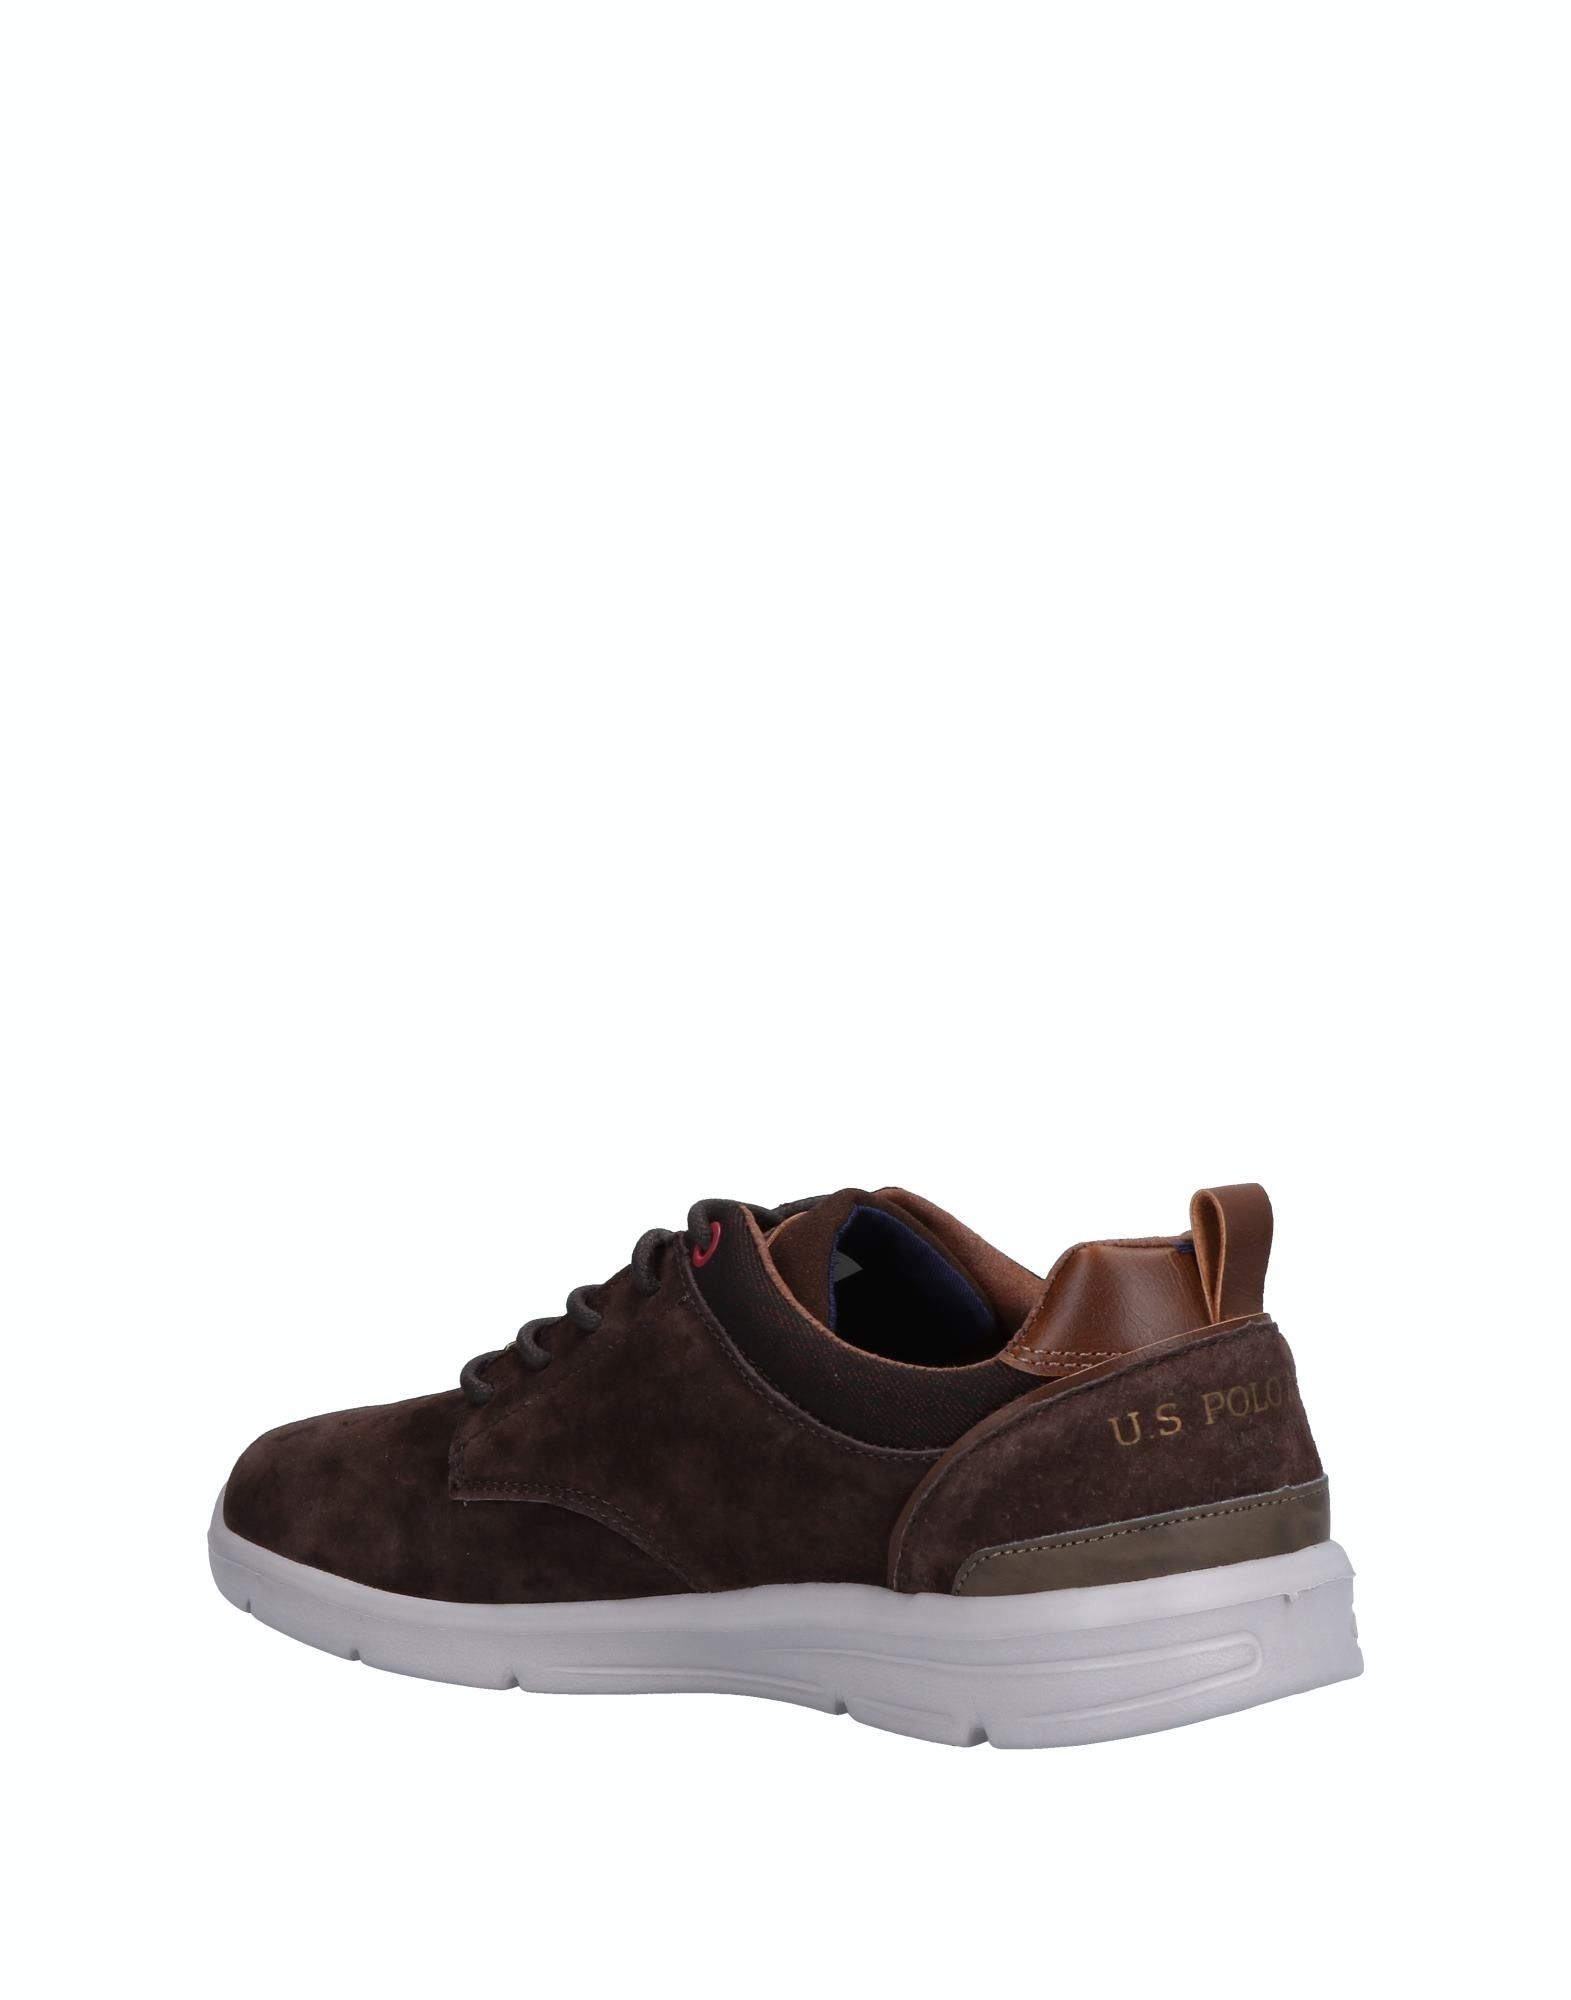 Sneakers Uomo U.S.Polo Assn. Uomo Sneakers - 11507694SP b5c969